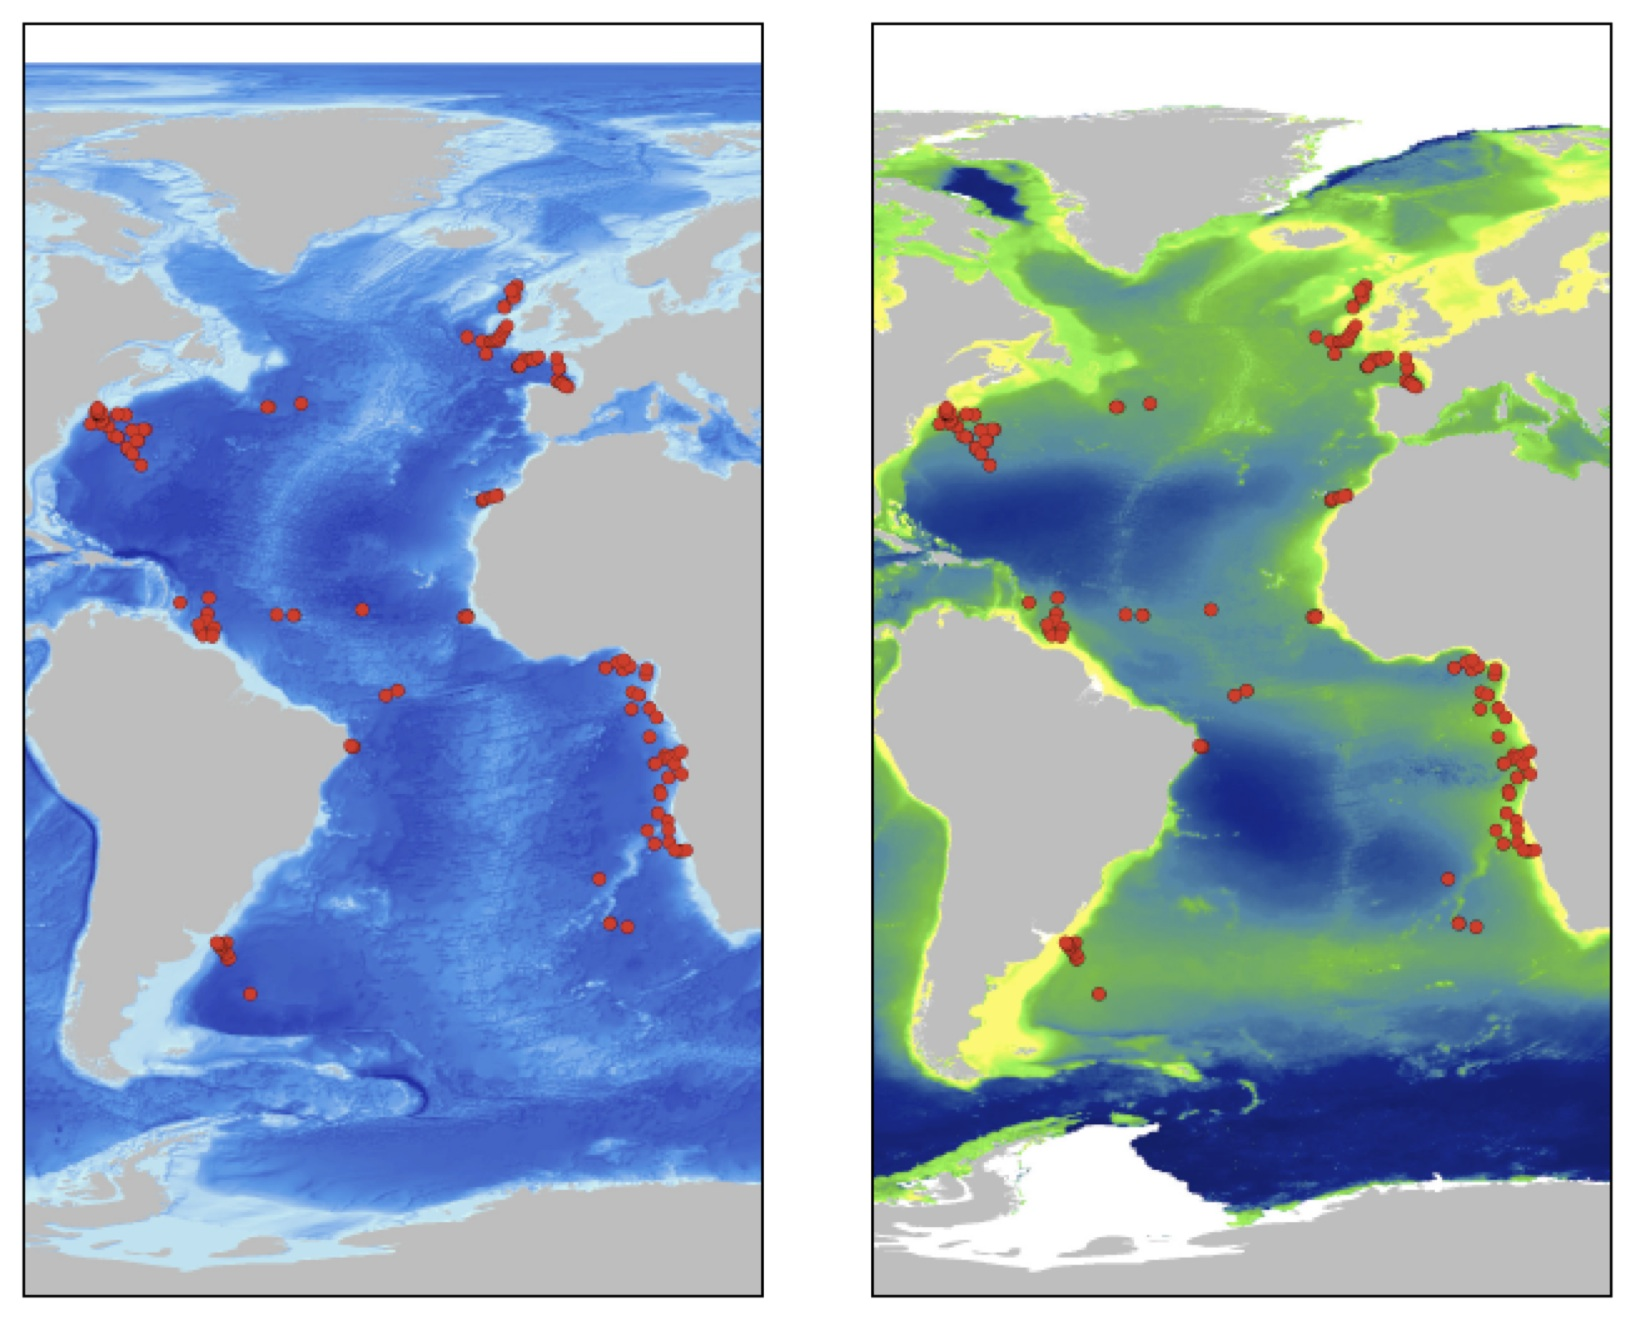 Map of ocean depths (left) and marine snow (right) with samples (red dots) from across the Atlantic Ocean.  Higher accumulations of marine snow are denoted by yellow.